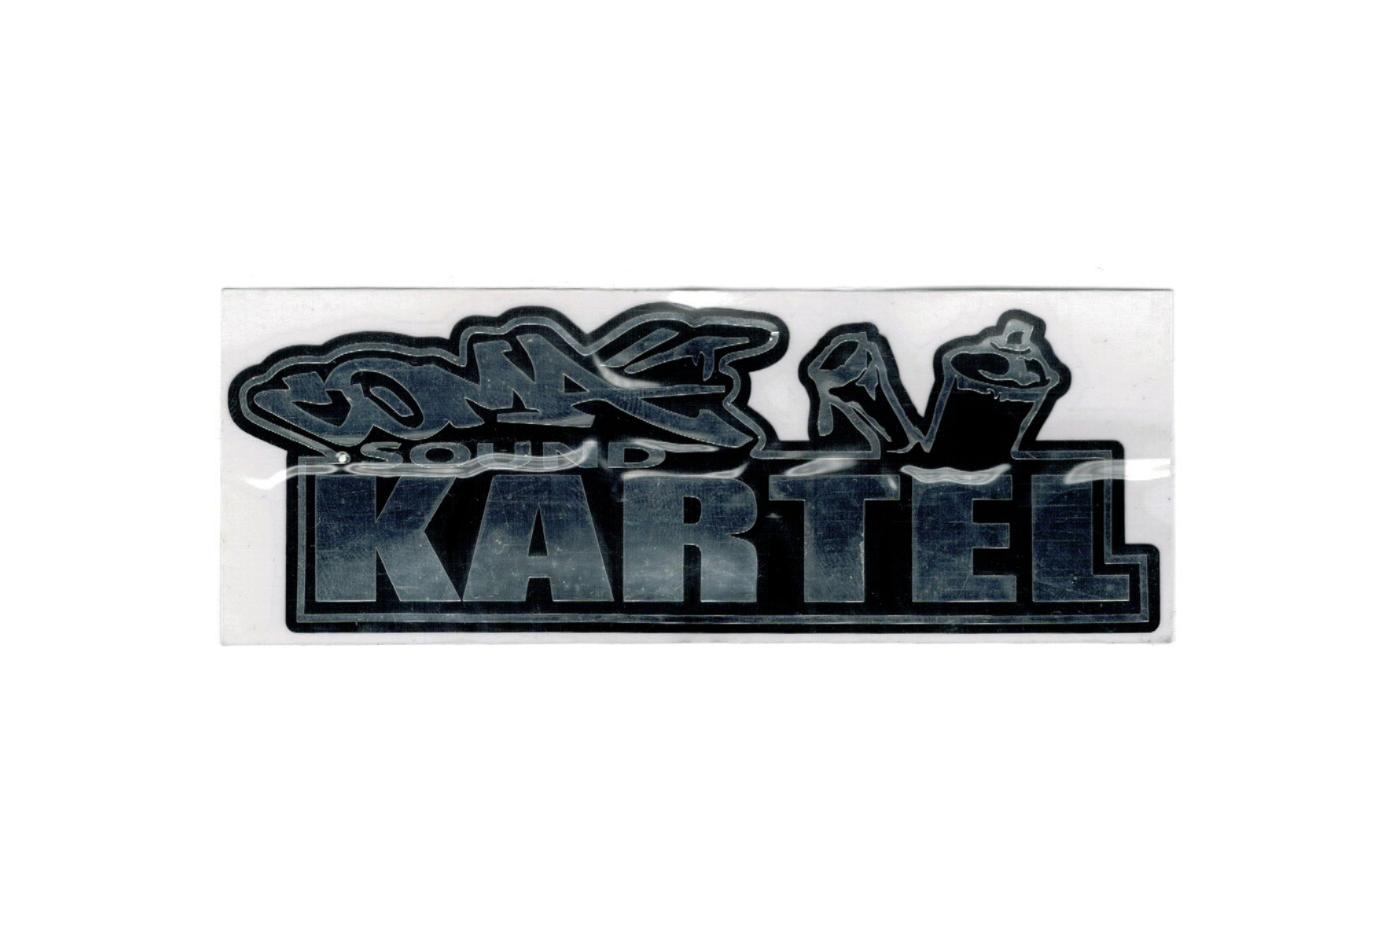 STICKER SILVER BLACK 4 X 12 CM AUTOCOLLANT ADHESIF CUSTOM DECORATION AUTO MOTO SCOOTER HOME QUAG SKETE ART GRAFFITI SKETCH DRAW ARTISTE TAG SHOP PRO 4974052838644 COMASOUND KARTEL CSK ONLINE